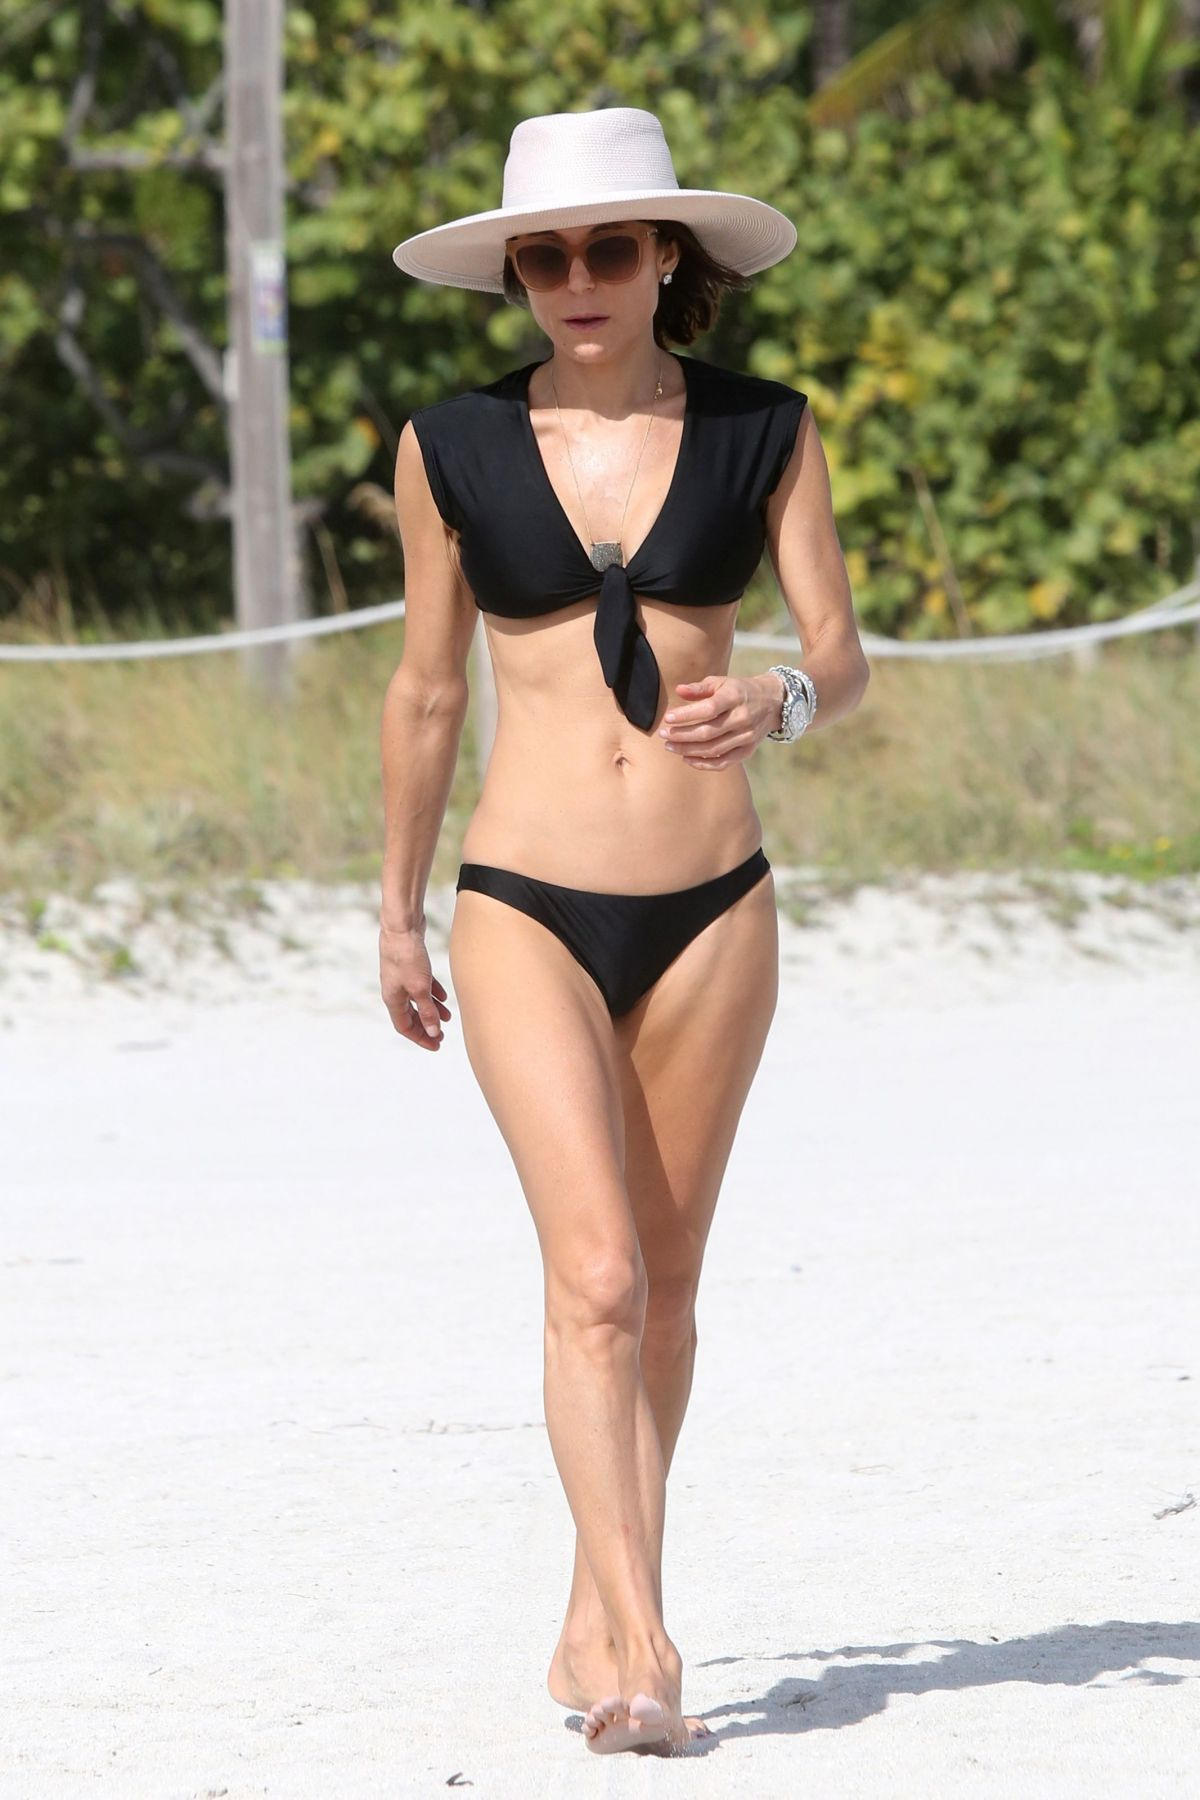 BETHENNY FRANKEL in Bikini on the Beach in Miami 12/05/2016   bethenny-frankel-in-bikini-on-the-beach-in-miami-12-05-2016_3